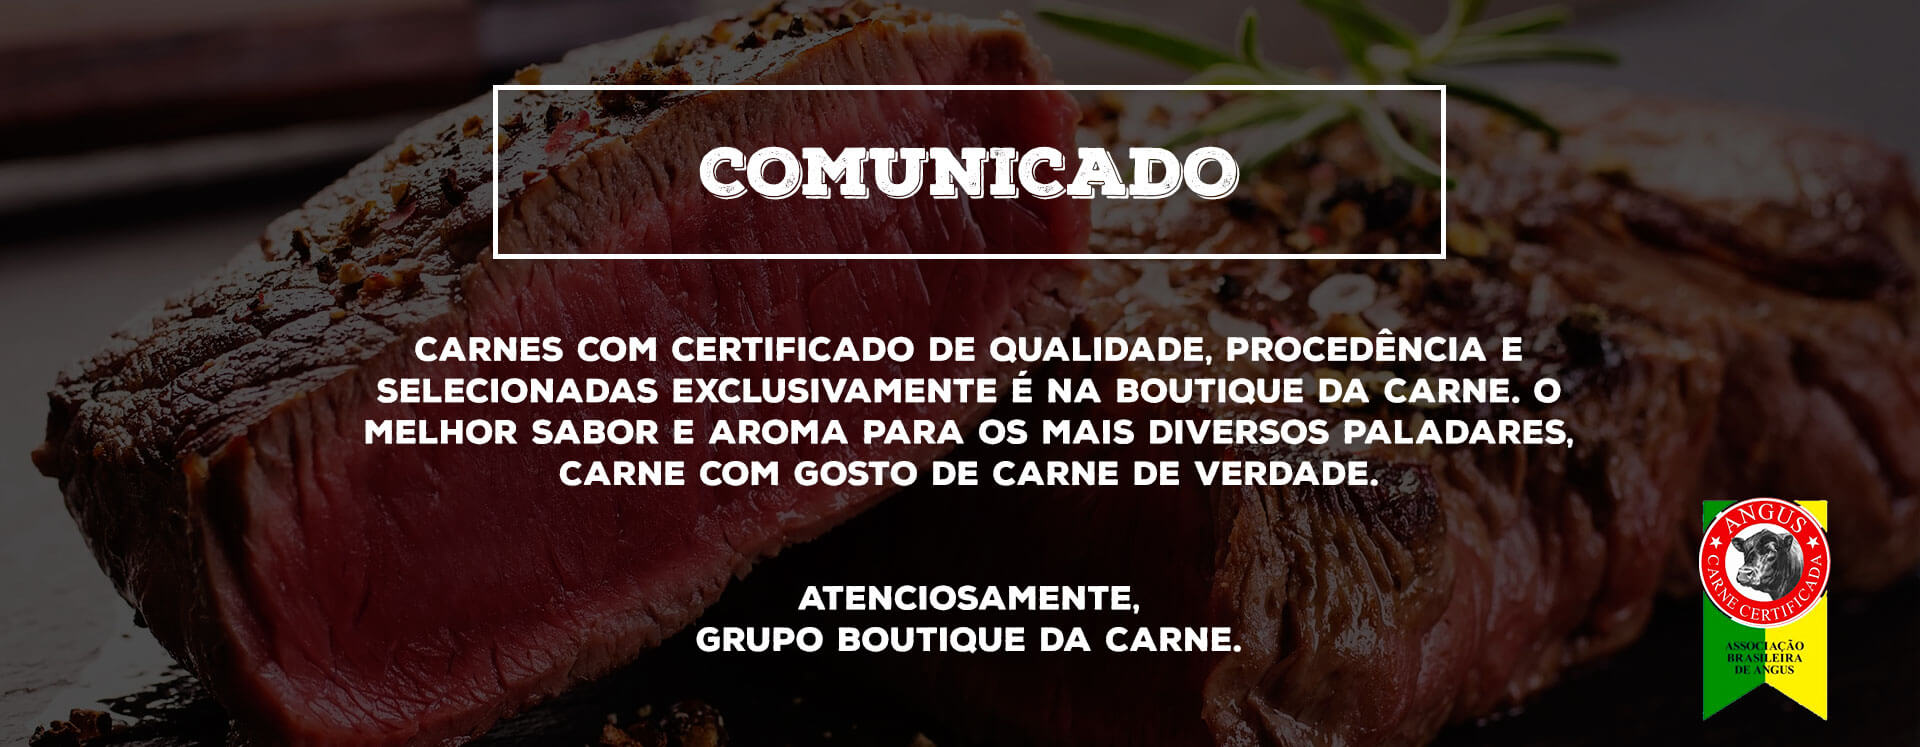 banner-comunicado-churrascaria